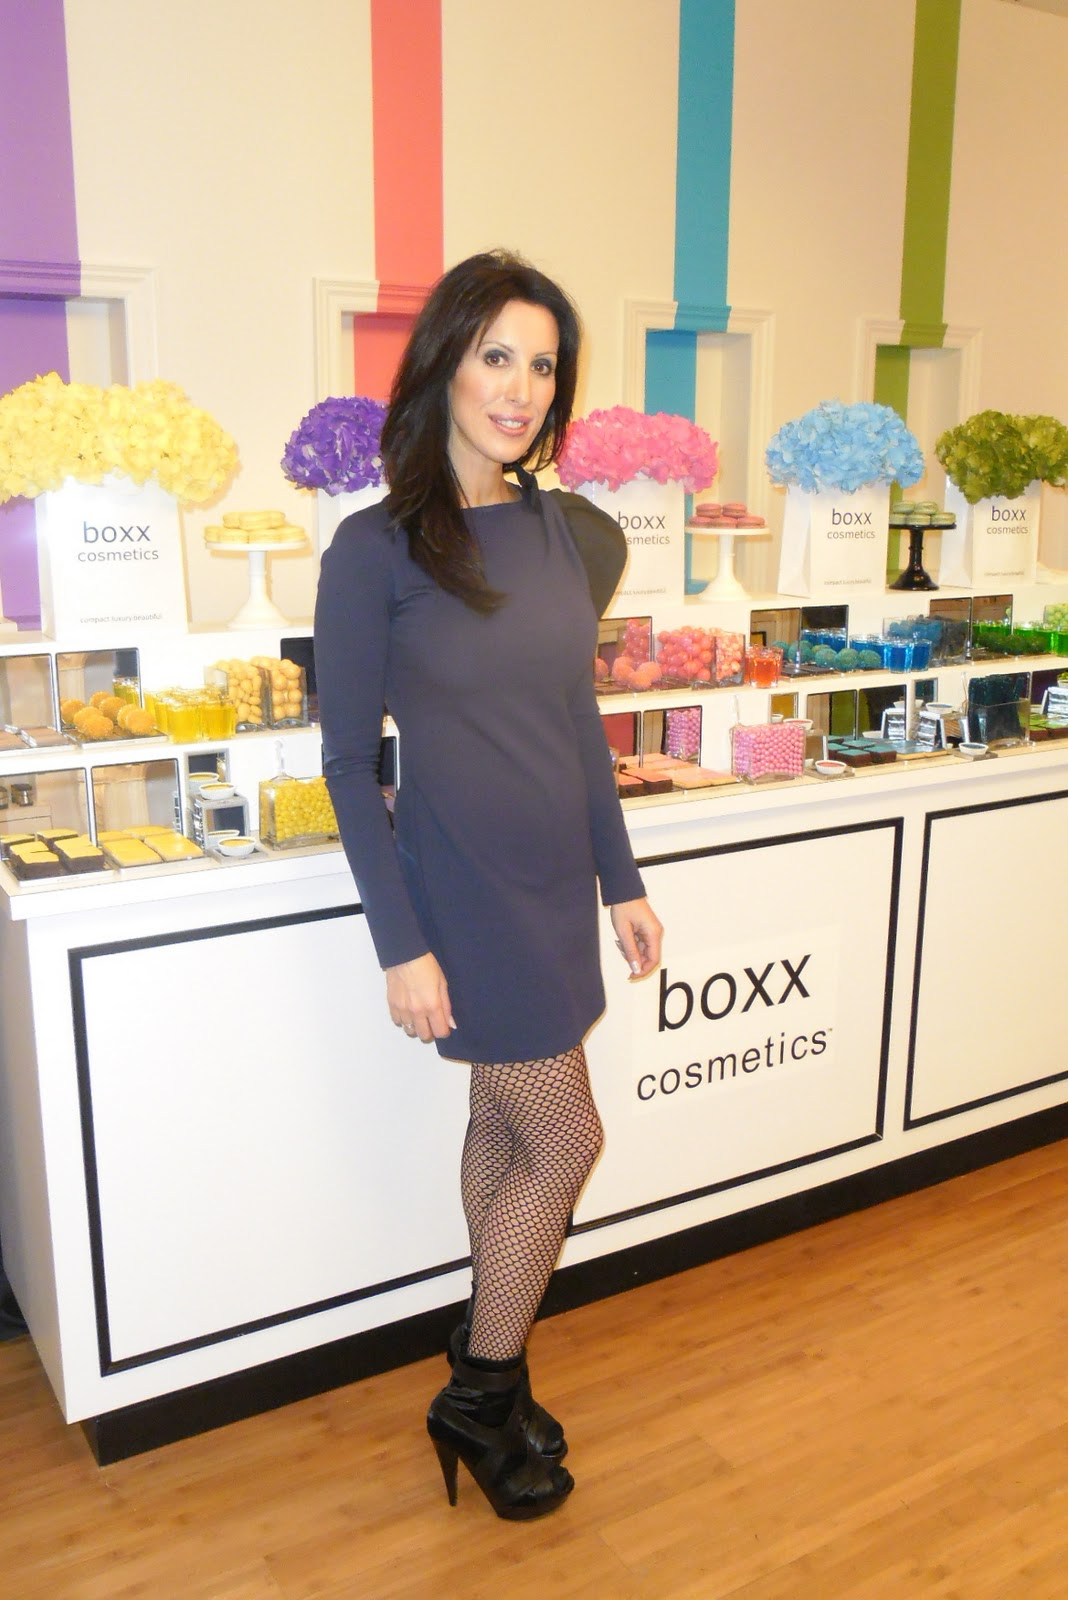 The Hip & Urban Girl's Guide: Boxx Cosmetics Launch Party